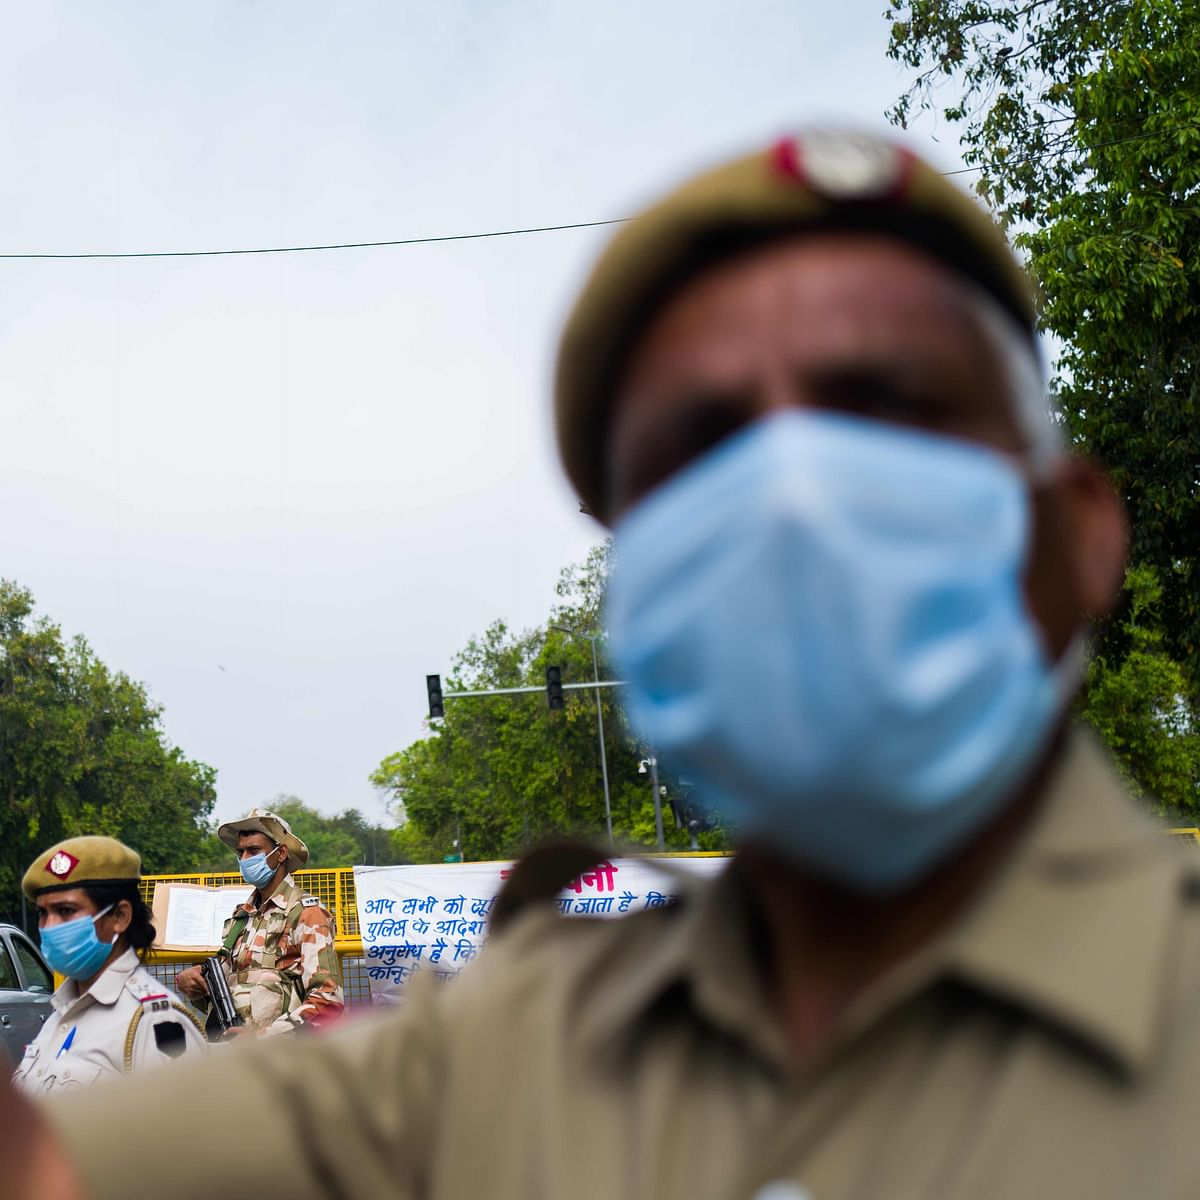 Bhopal: Stressed from duty hours, constable consumes sanitizer